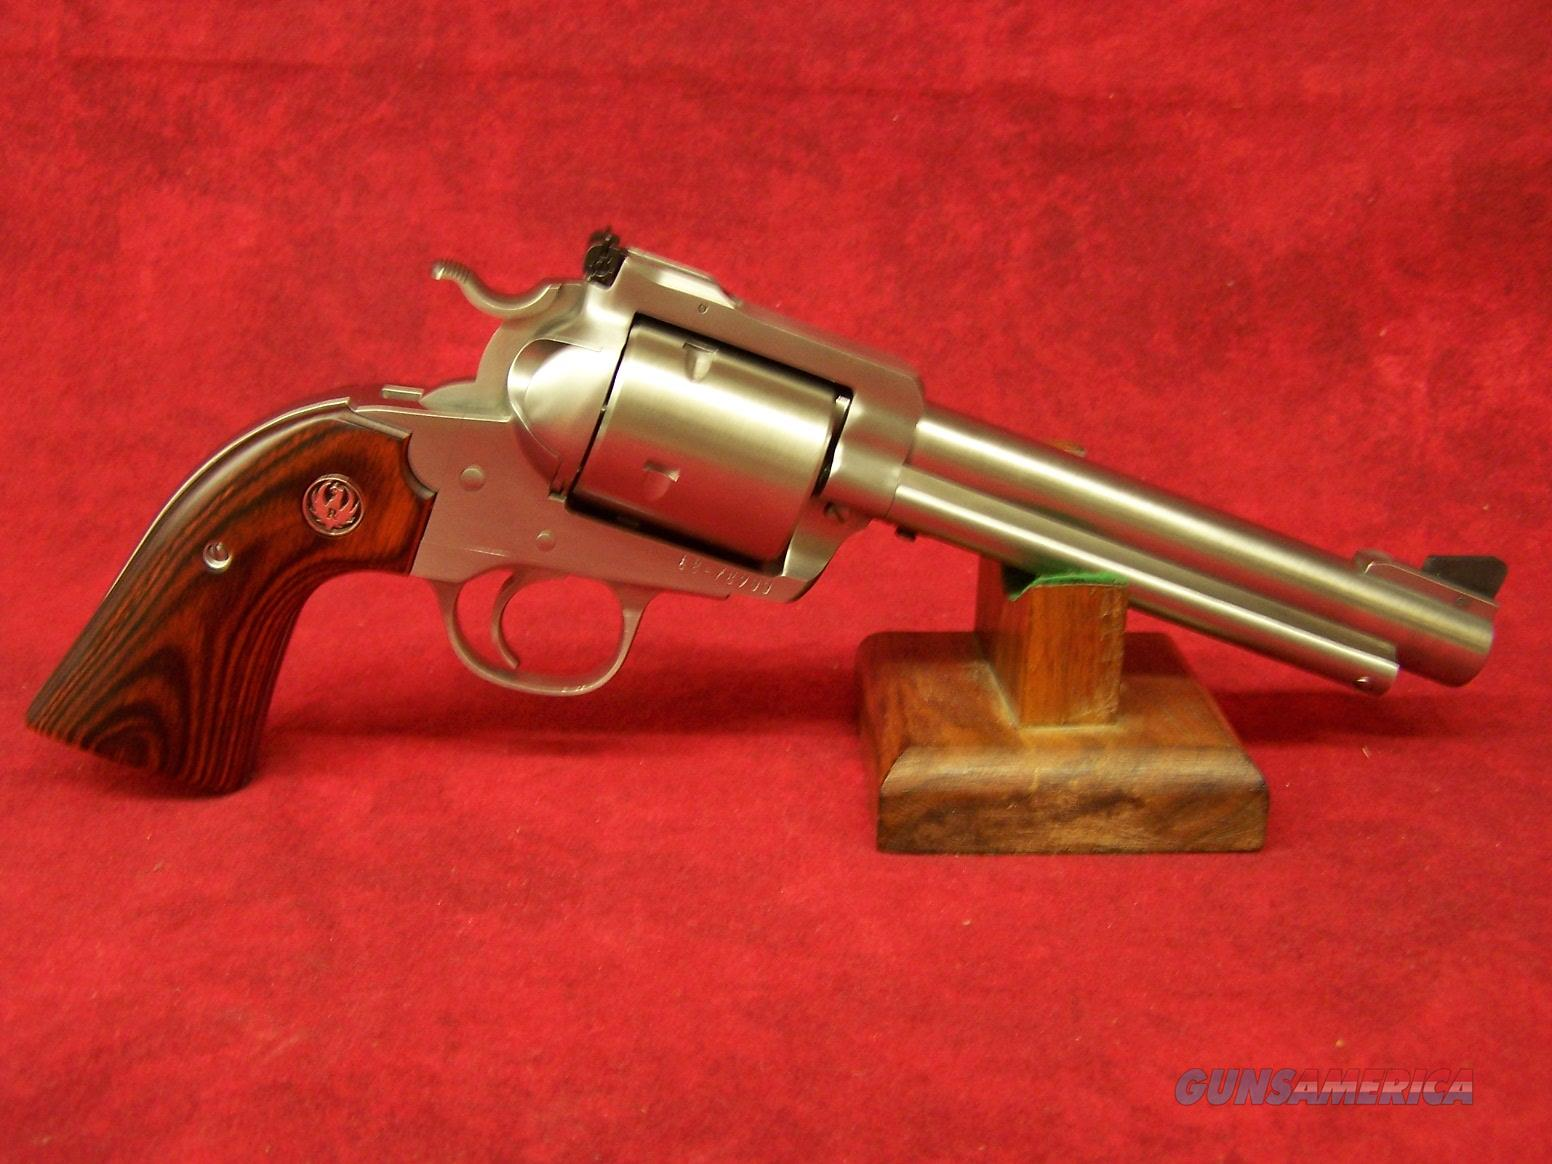 "RUGER SUPER BLACKHAWK BISLEY 454 CASULL SS 6.5"" WOOD GRIPS / UNFLUTED CYL (00871)  Guns > Pistols > Ruger Single Action Revolvers > Blackhawk Type"